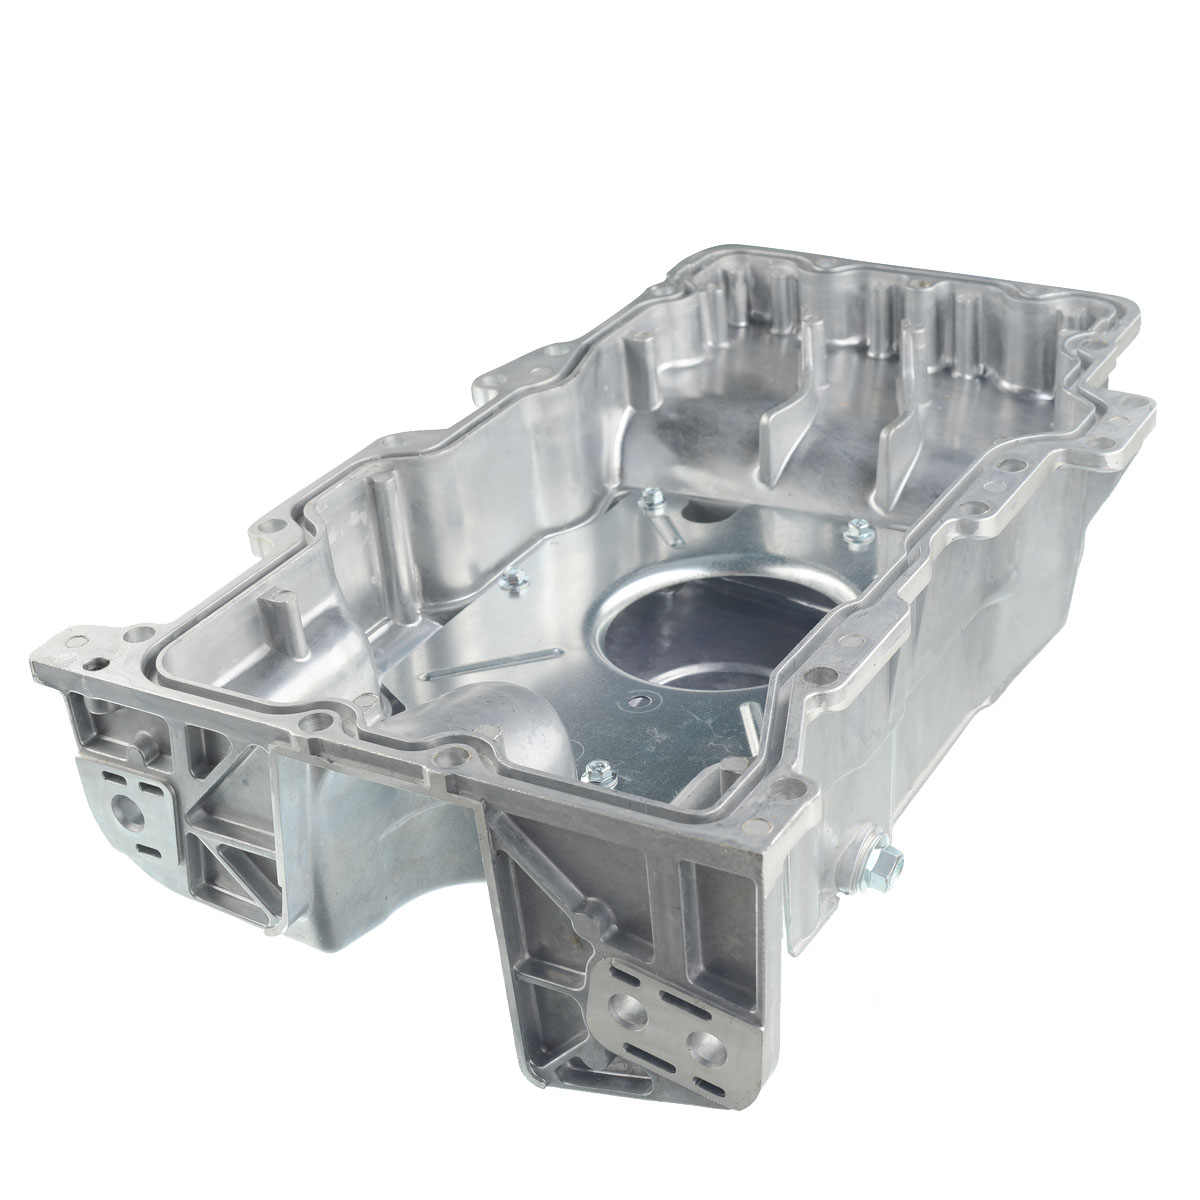 hight resolution of  engine oil pan for ford escape cougar mariner mazda 6 mpv tribute v6 2 5l 3 0